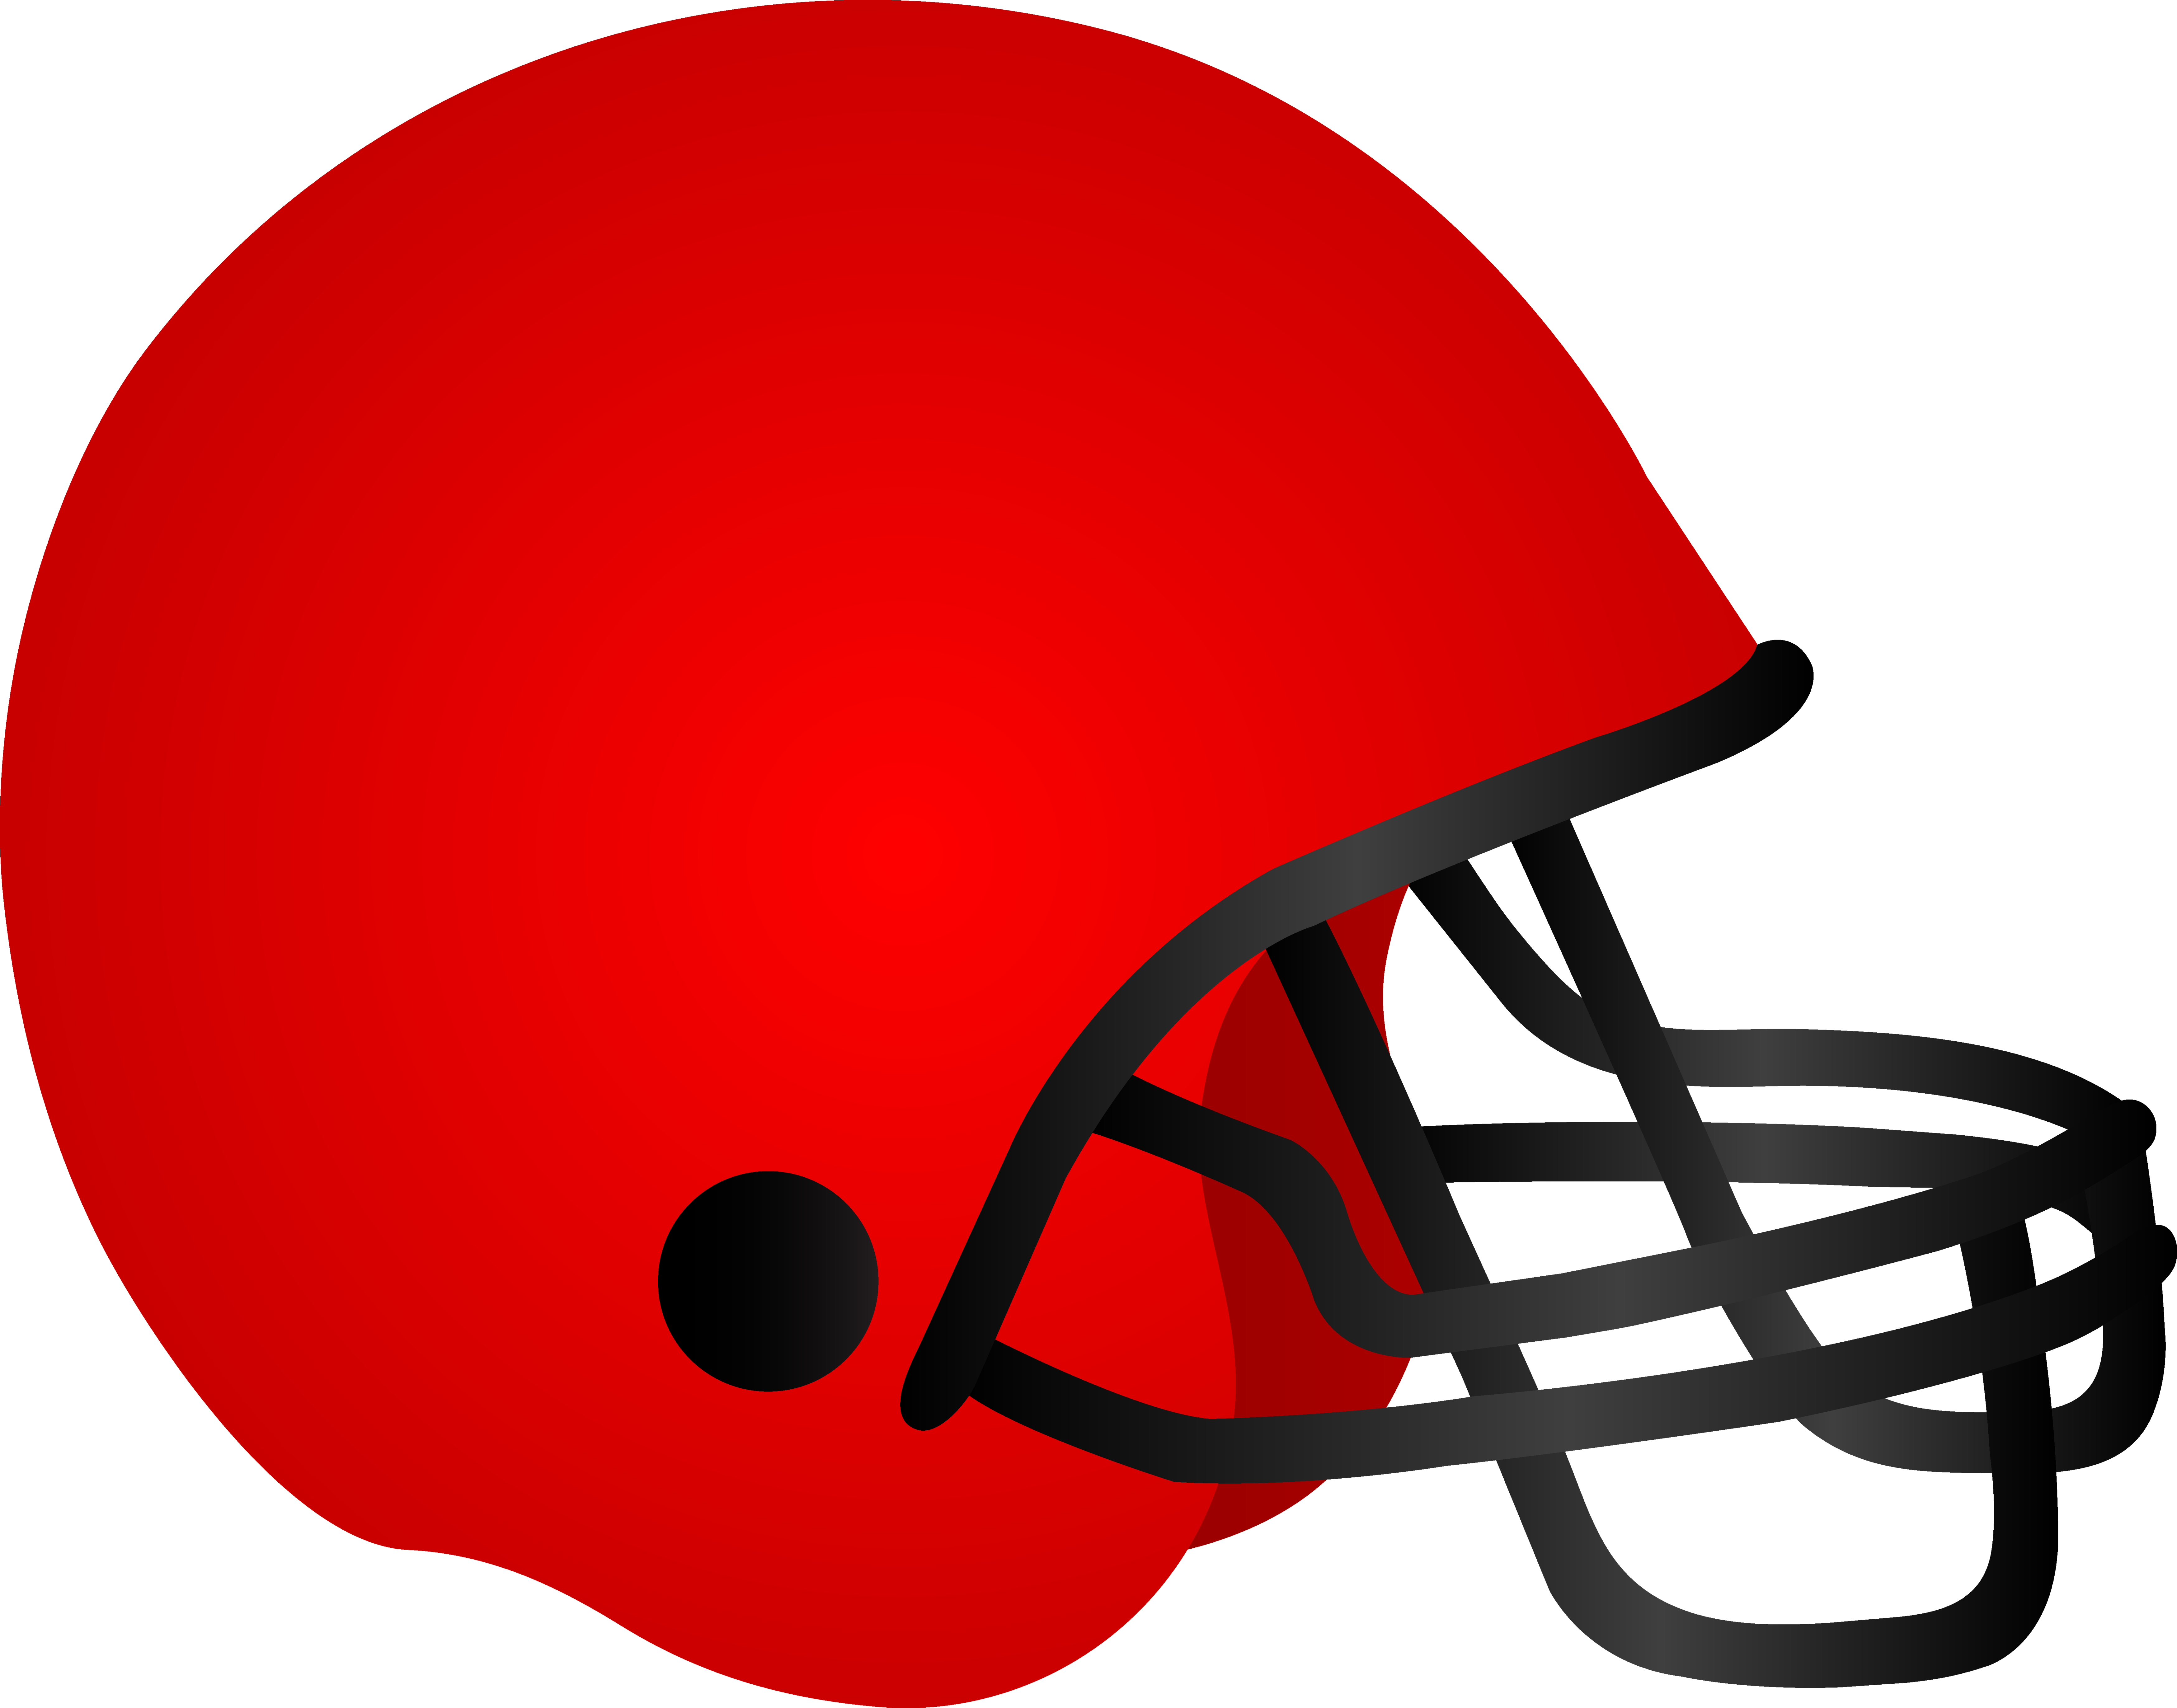 Football clipart lace. Helmet clipground red